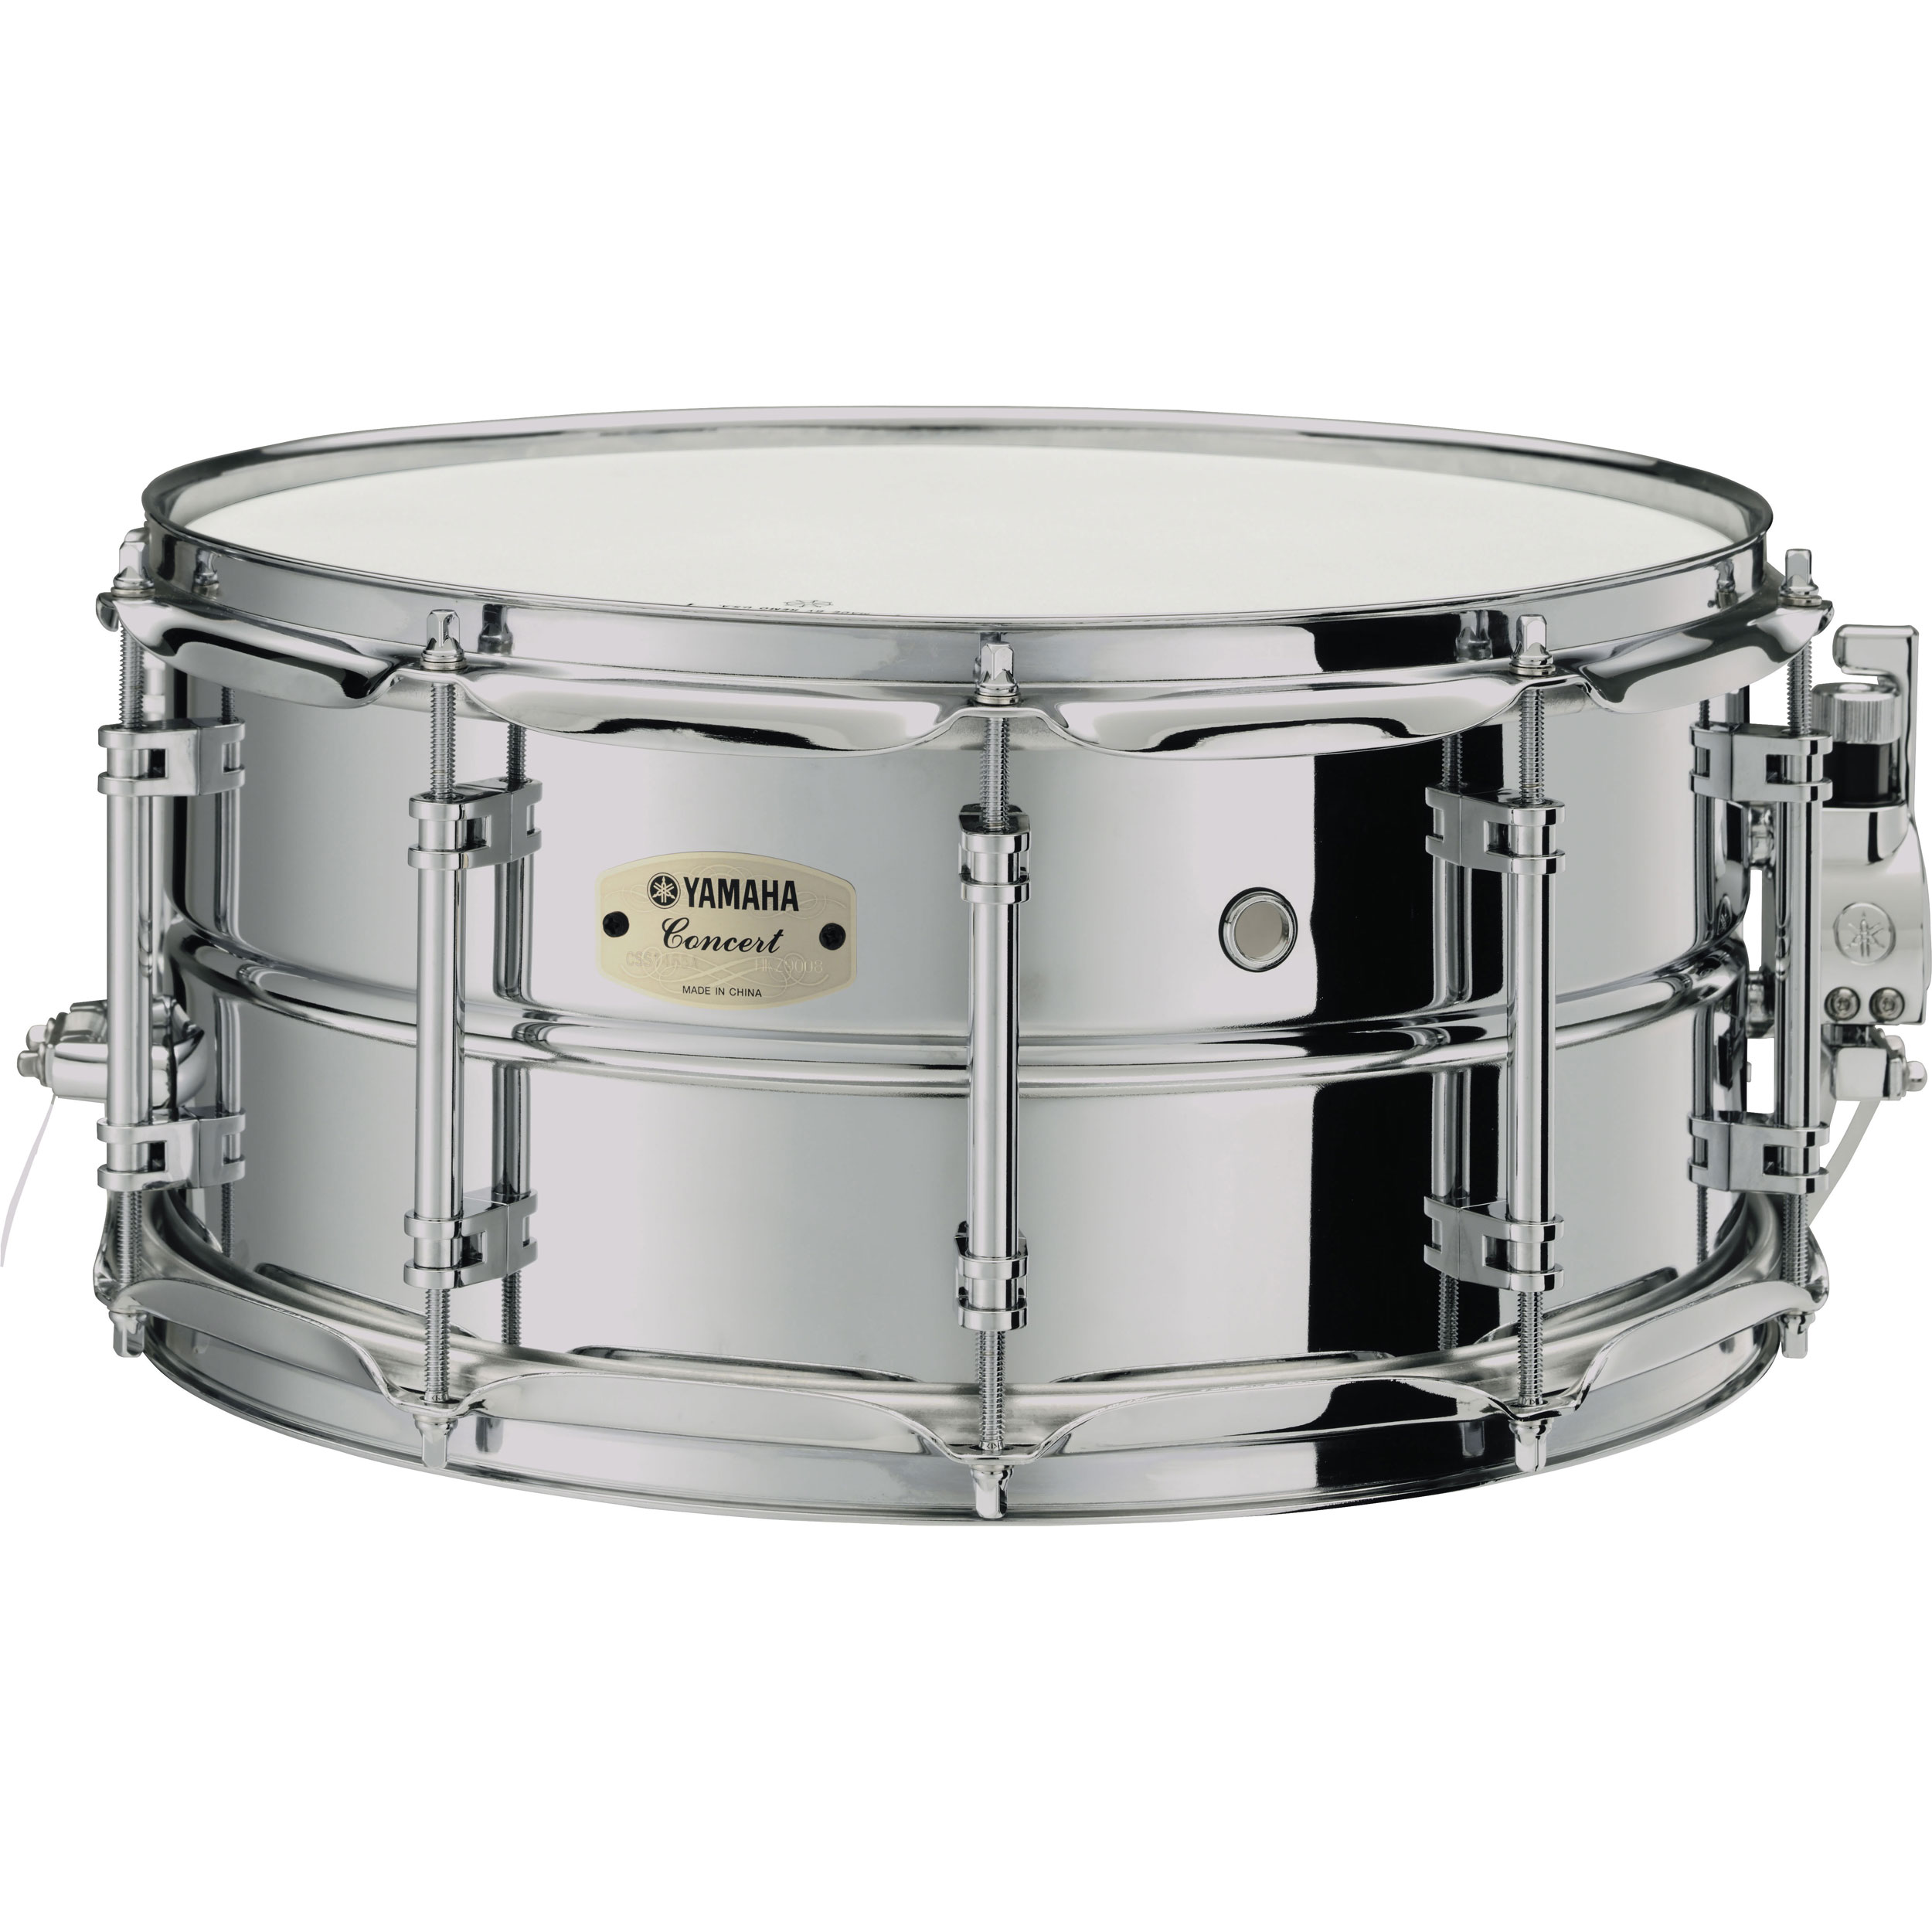 "Yamaha CSS-A Series 14"" x 6.5"" Steel Concert Snare Drum"